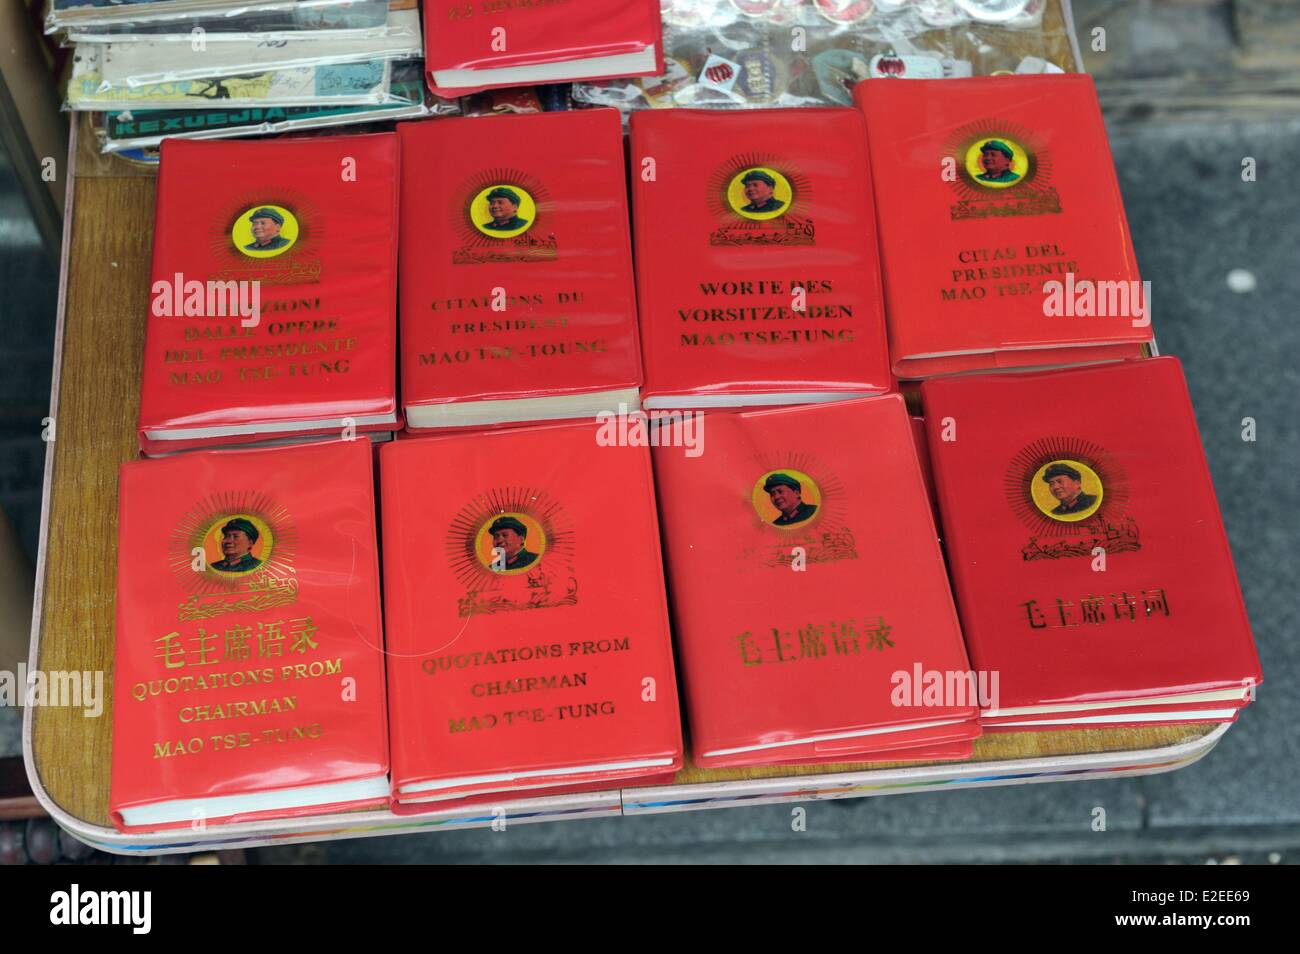 China, Shanghai, rue Dongtai, flea market, propaganda Maoist objecs with Mao Zedong Little Red Book - Stock Image